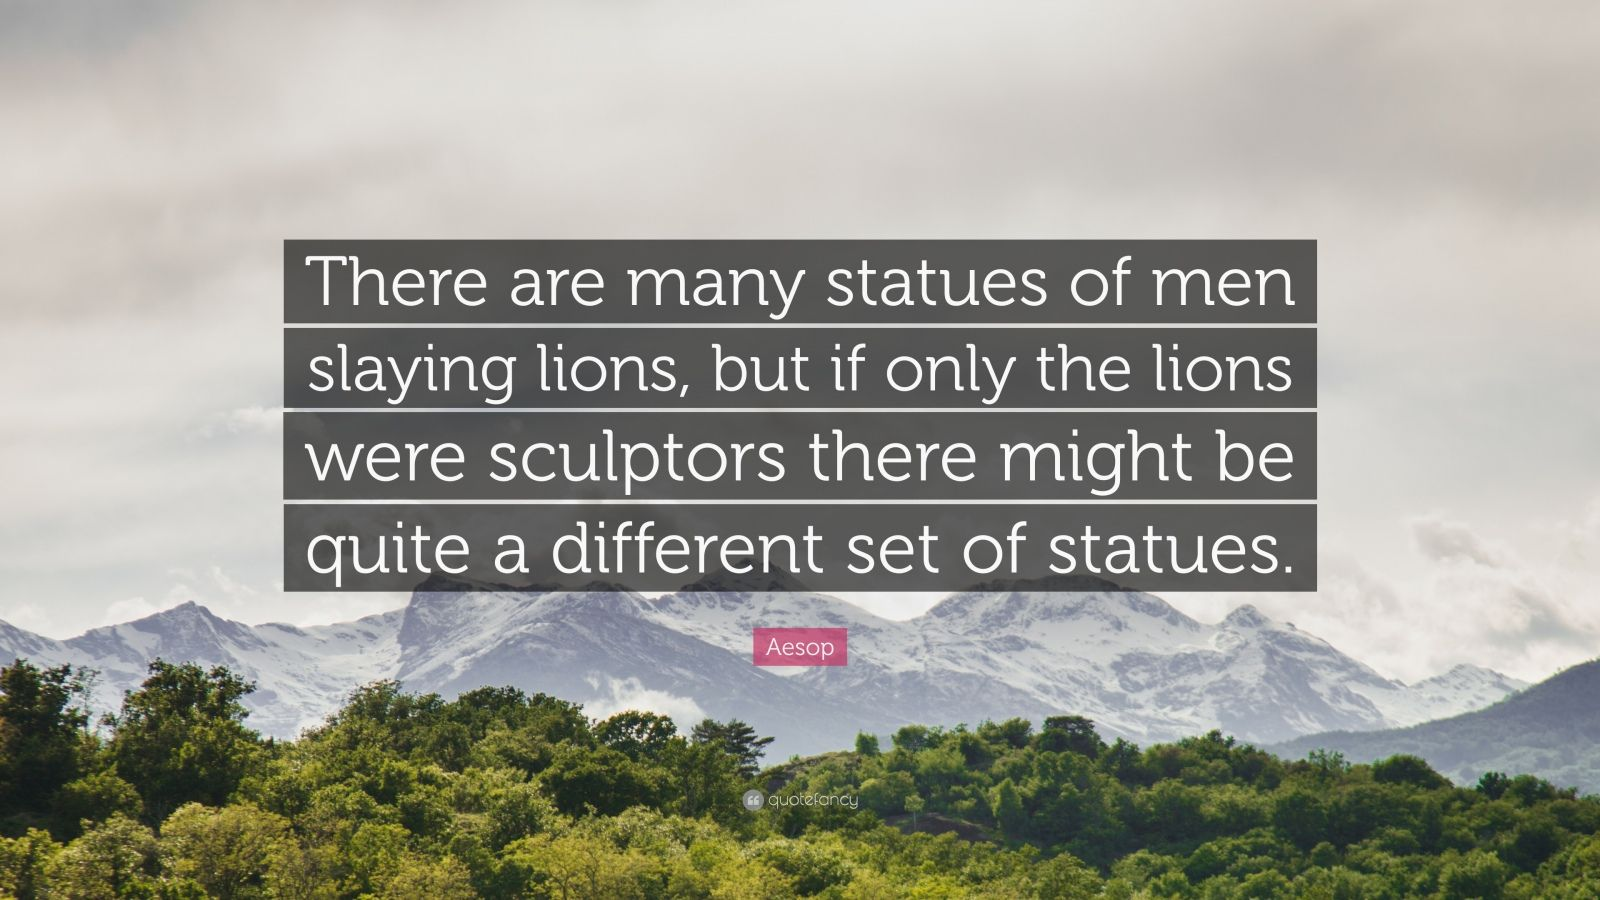 """Aesop Quote: """"There are many statues of men slaying lions, but if only the lions were sculptors there might be quite a different set of statues."""""""